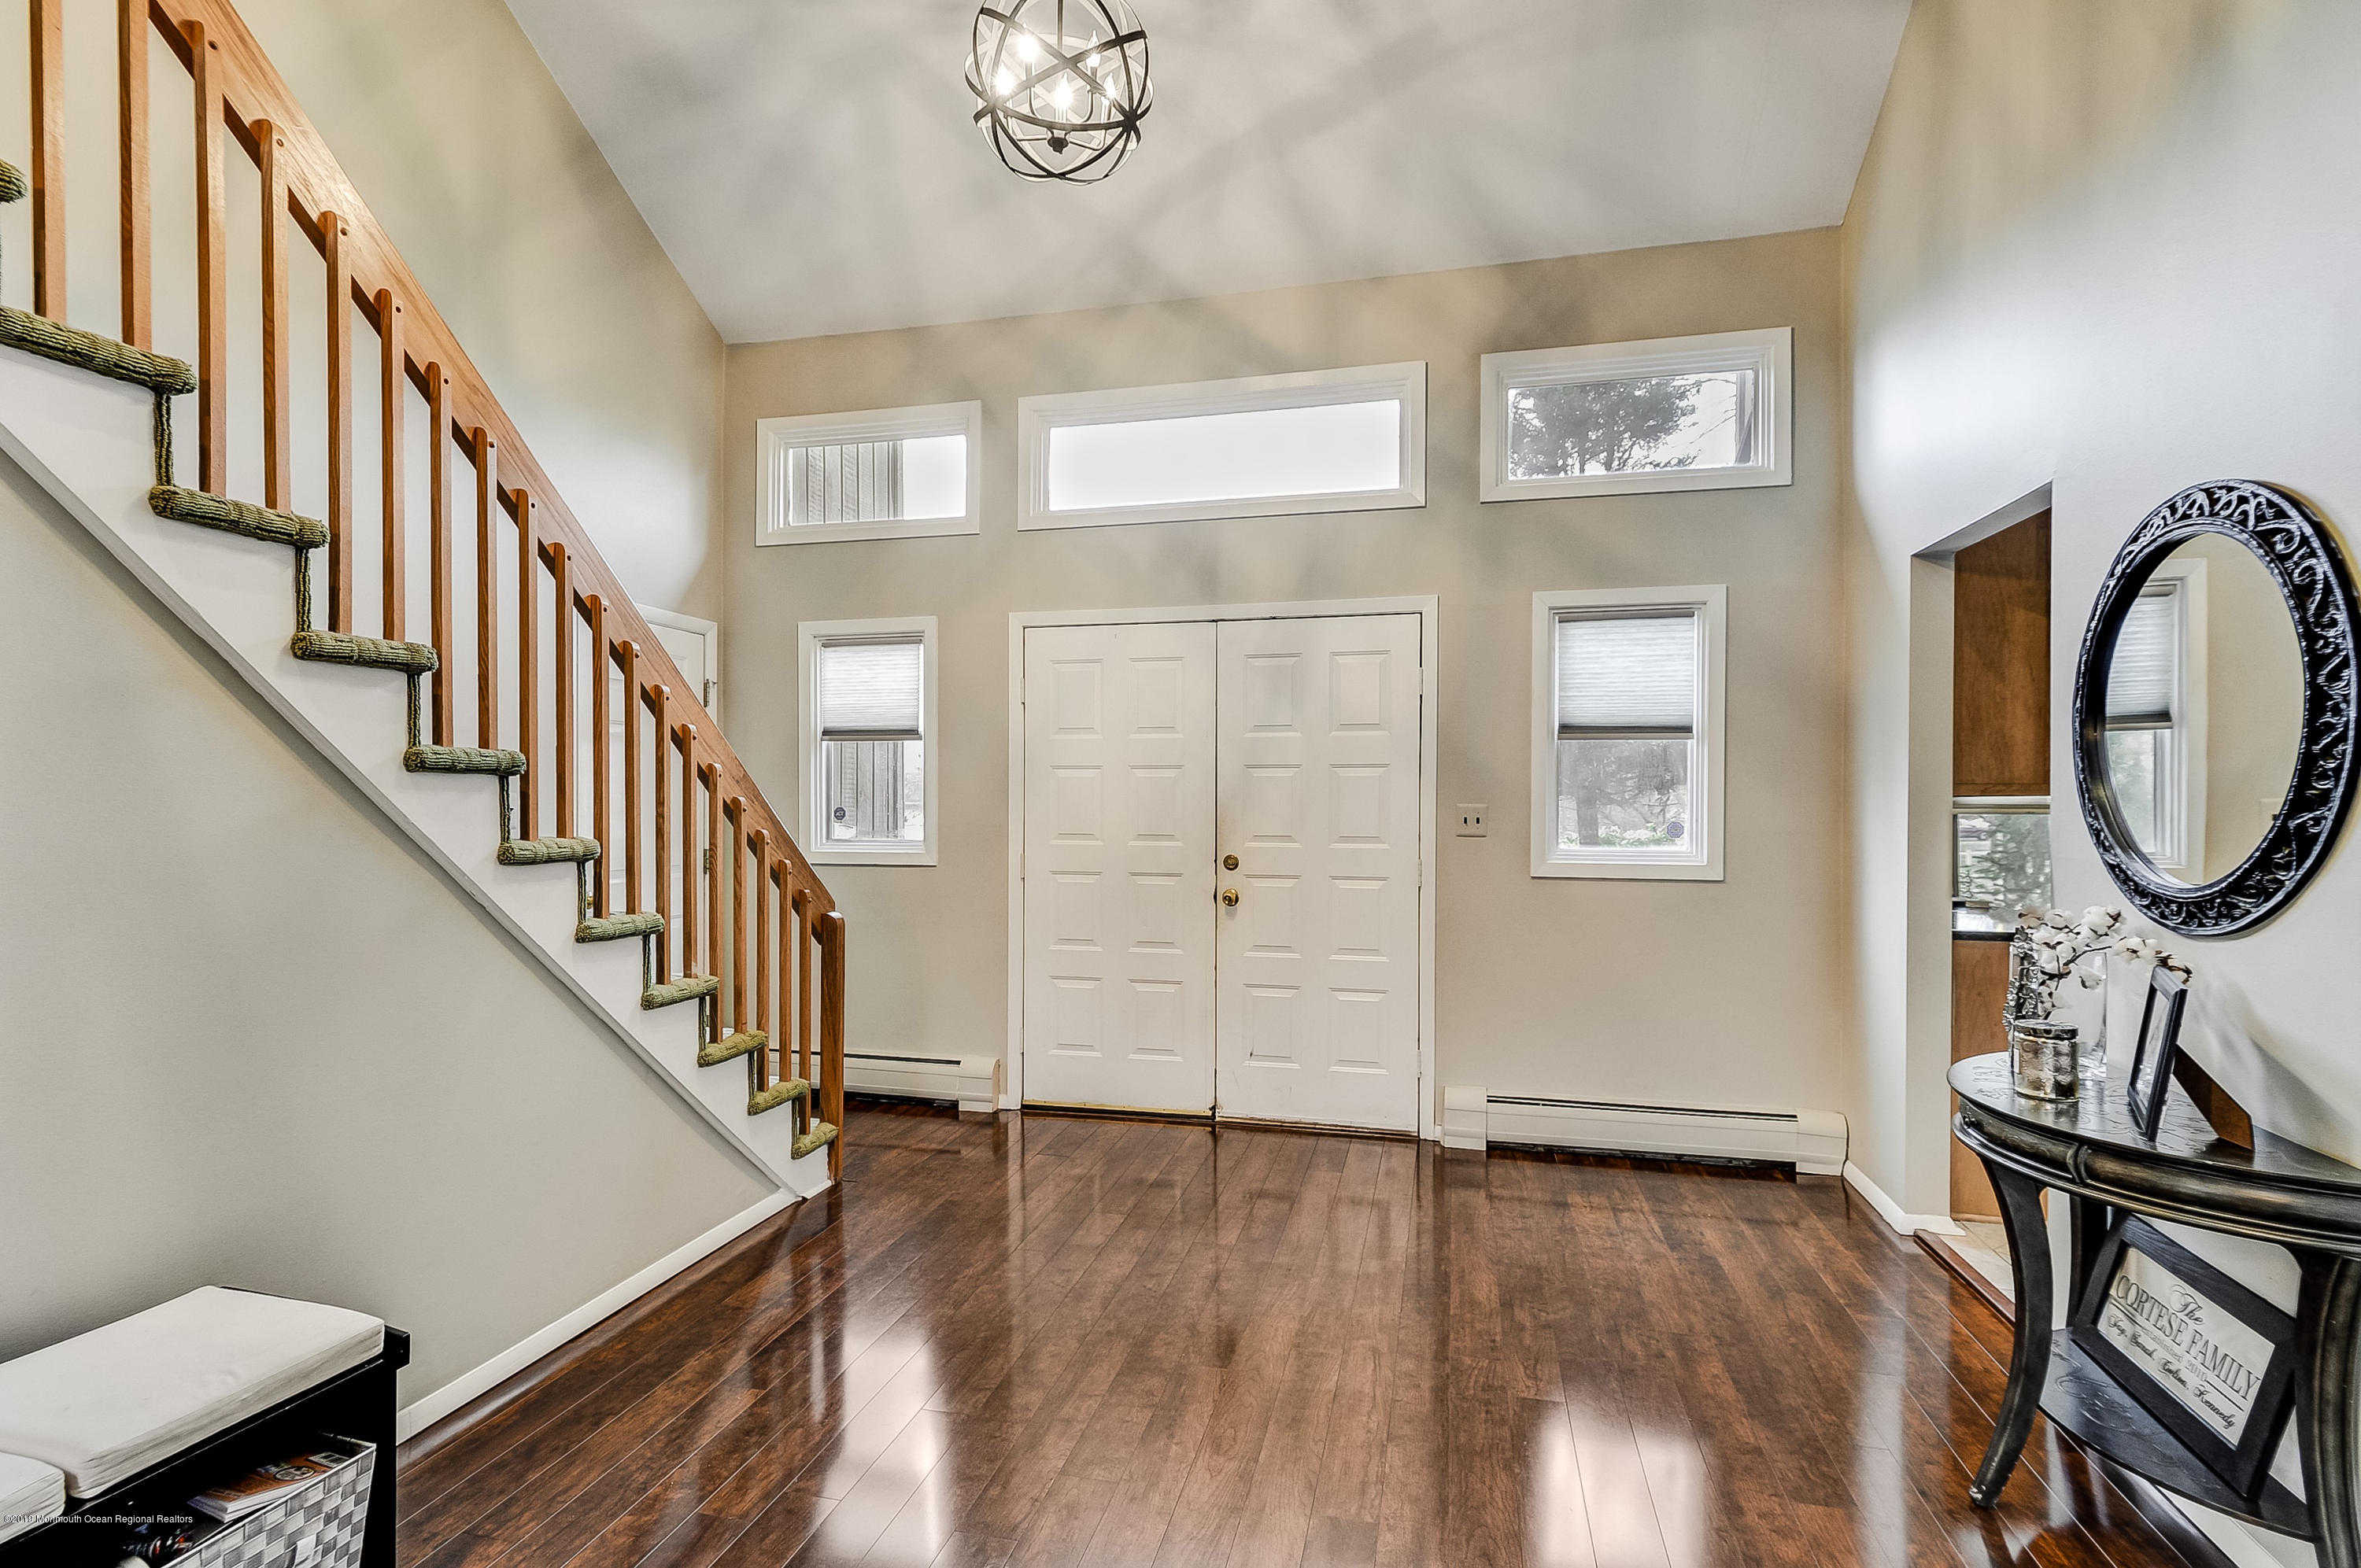 2 Clinton Court, Holmdel, NJ 07733 now has a new price of $610,000!